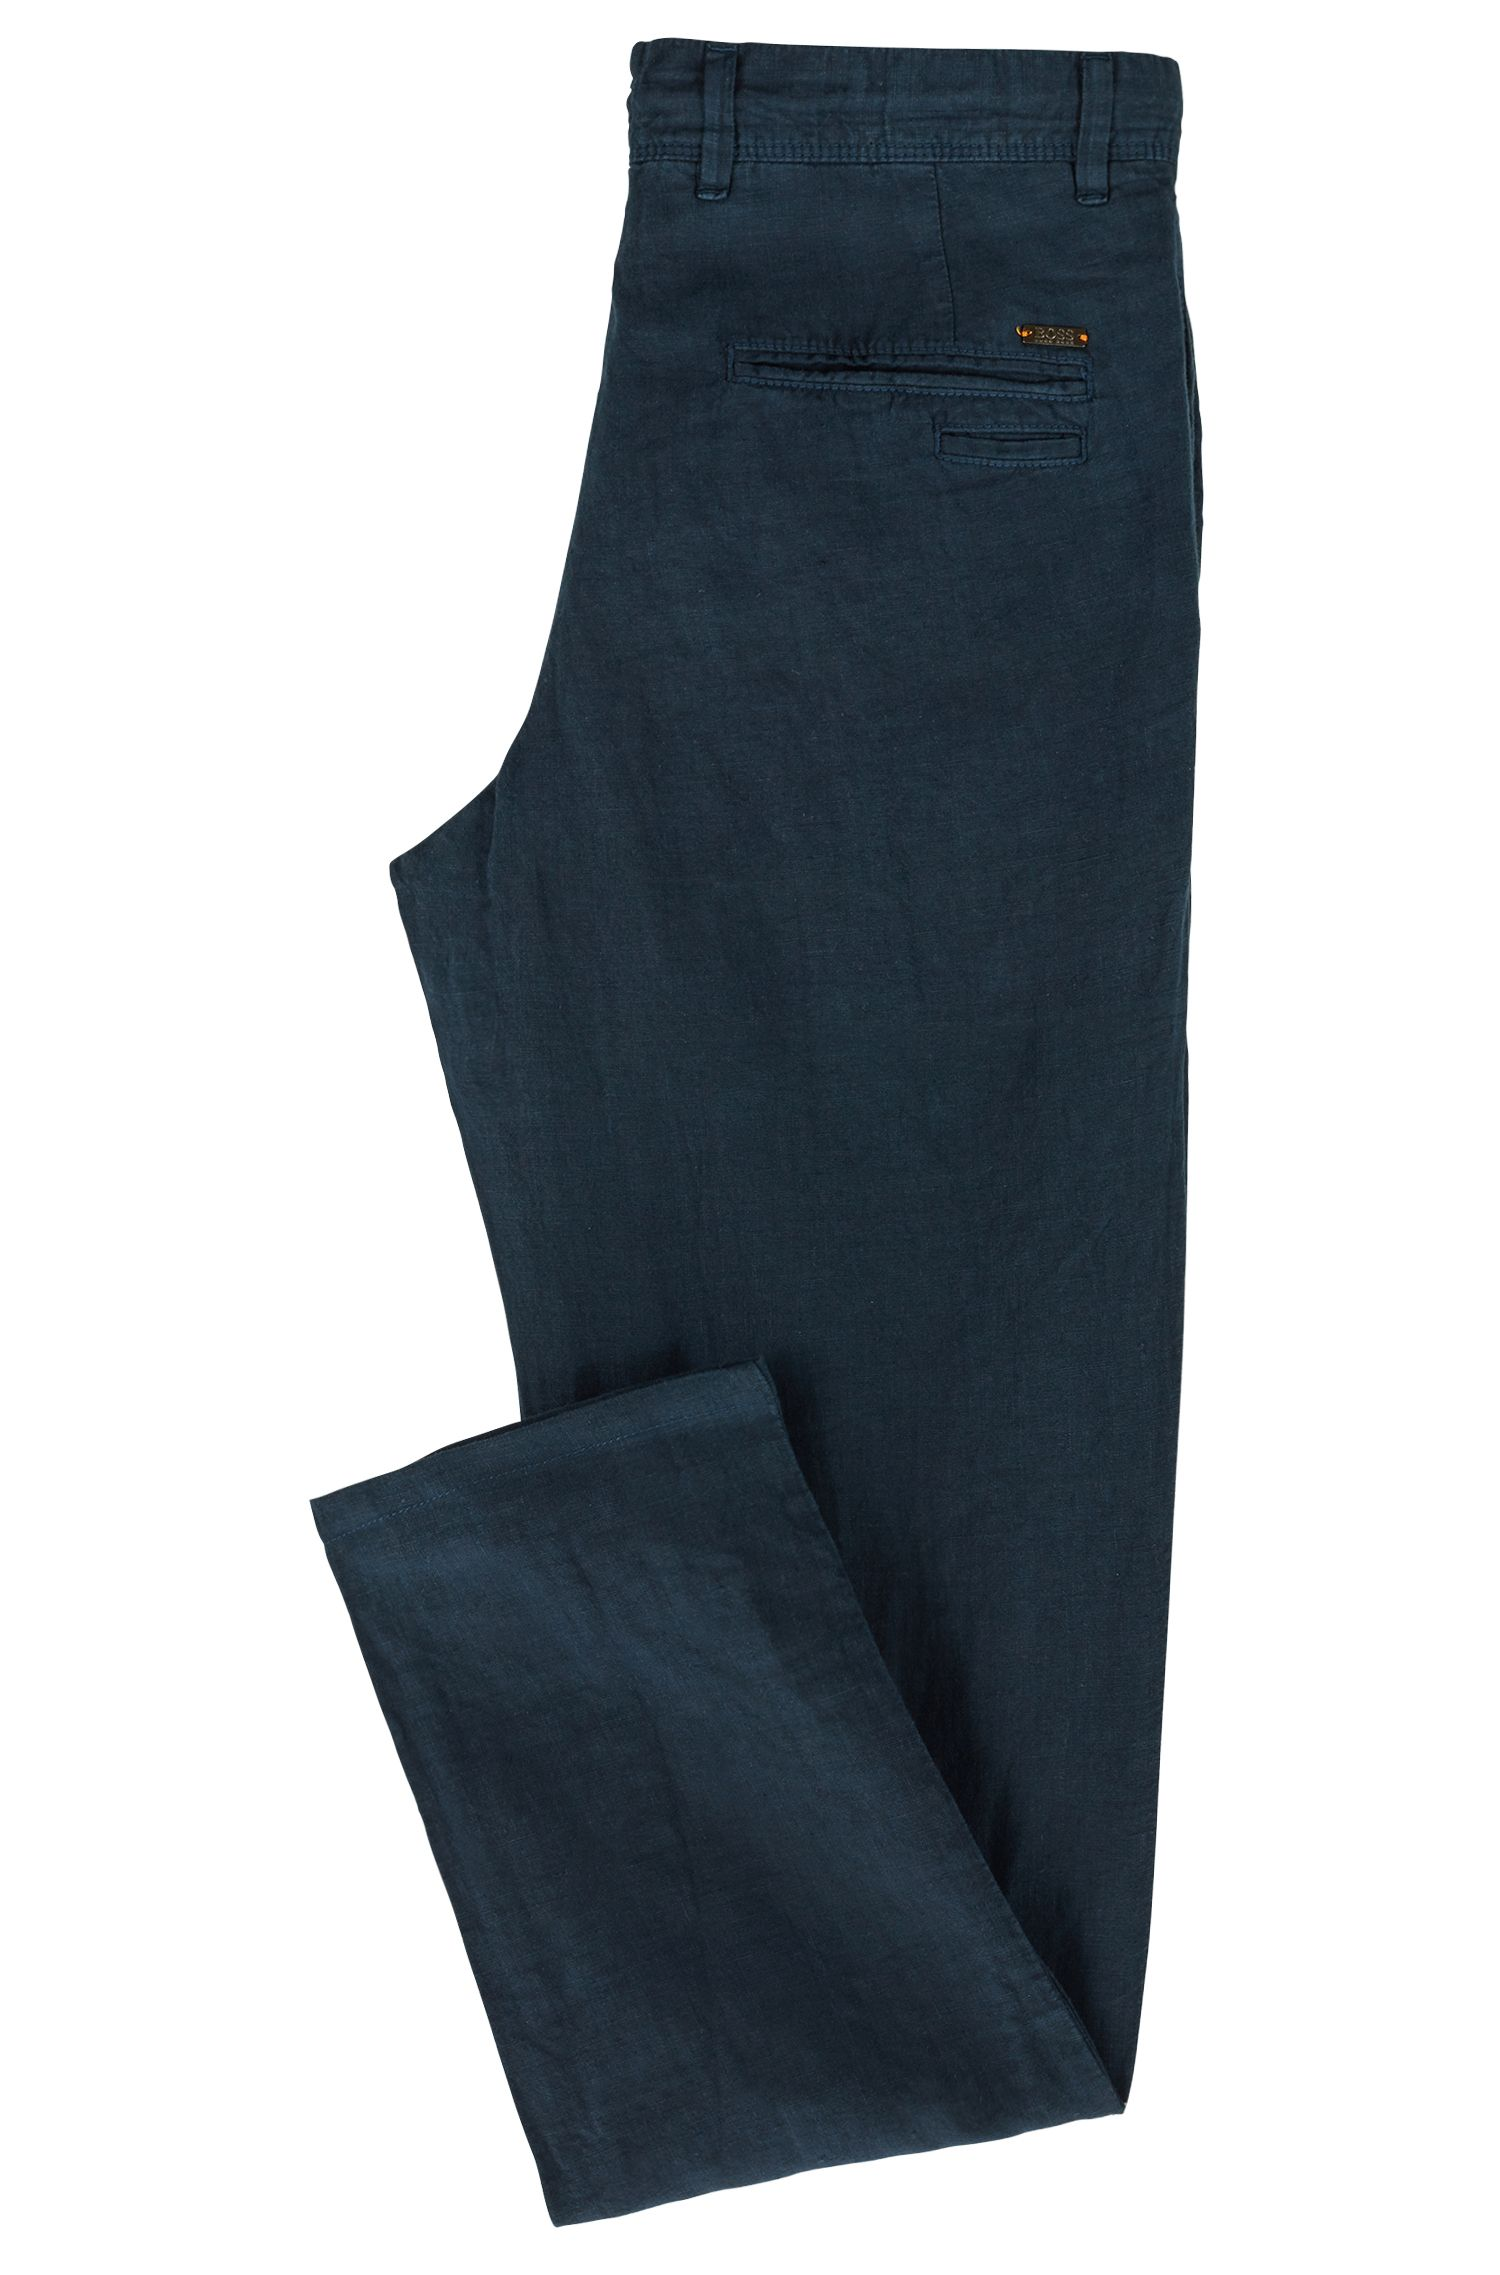 Linen Pants, Tapered Fit | Stapered4-D